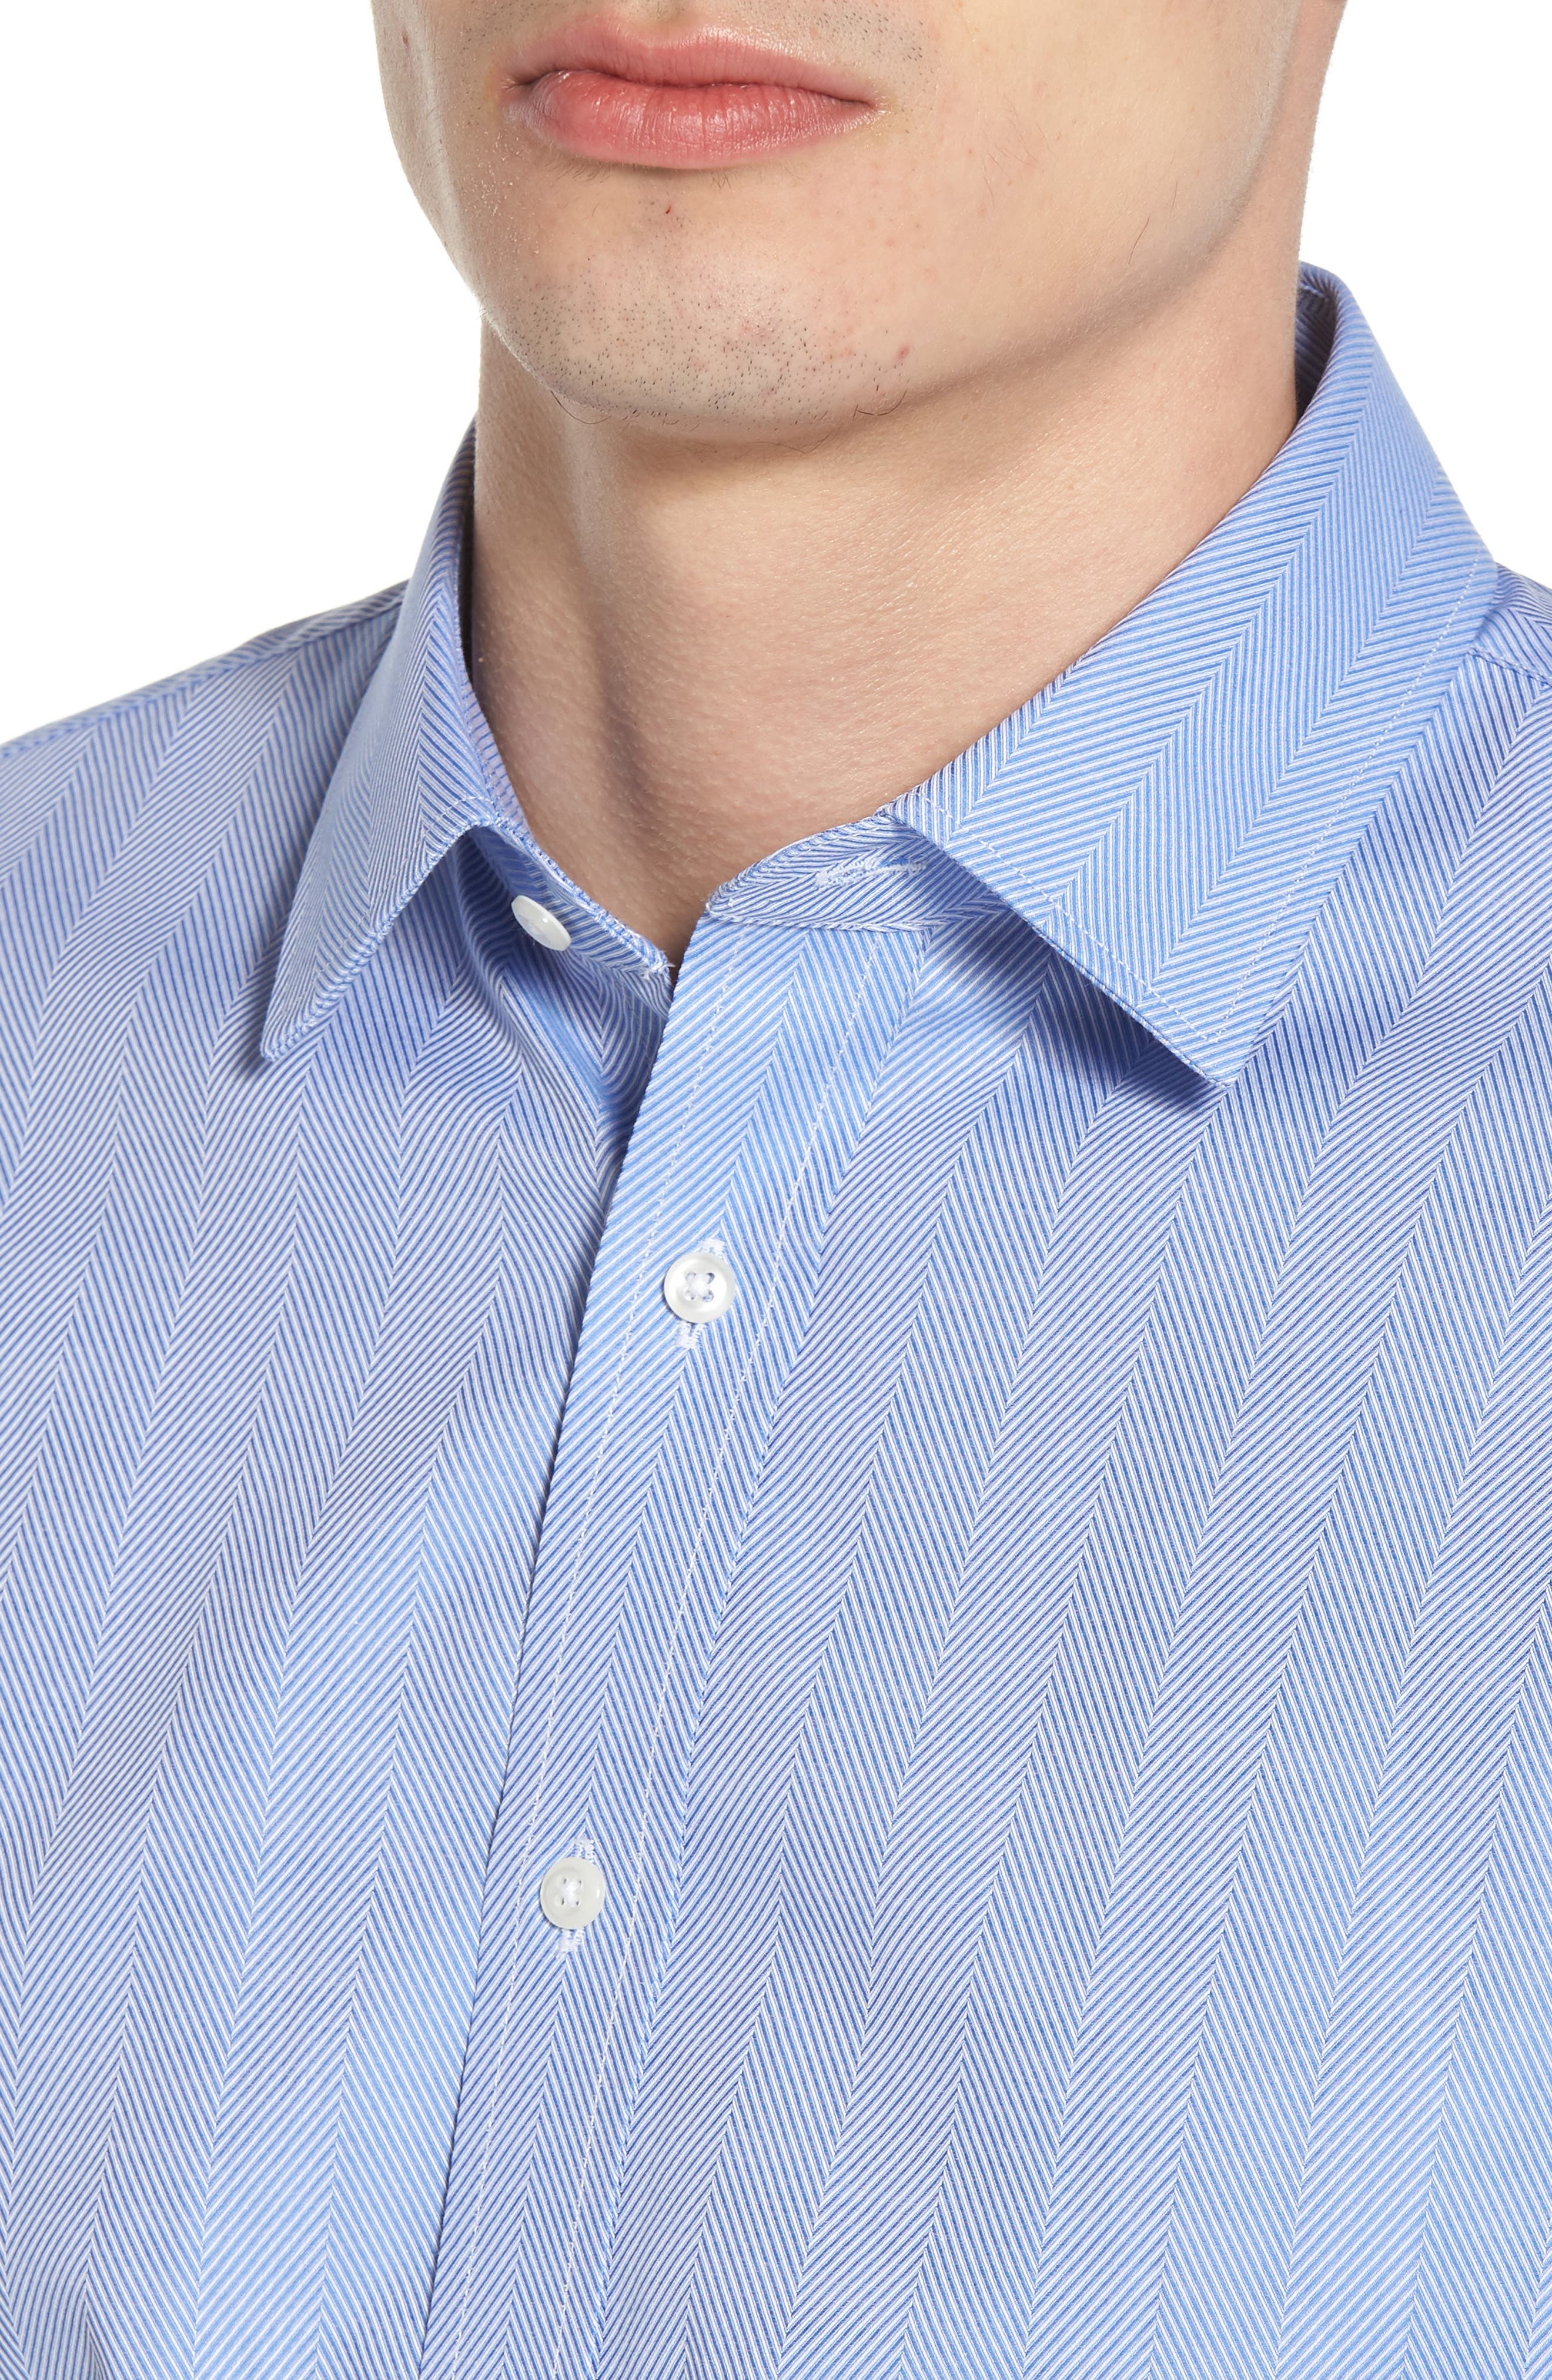 Trim Fit Herringbone Dress Shirt,                             Alternate thumbnail 2, color,                             Blue Provence